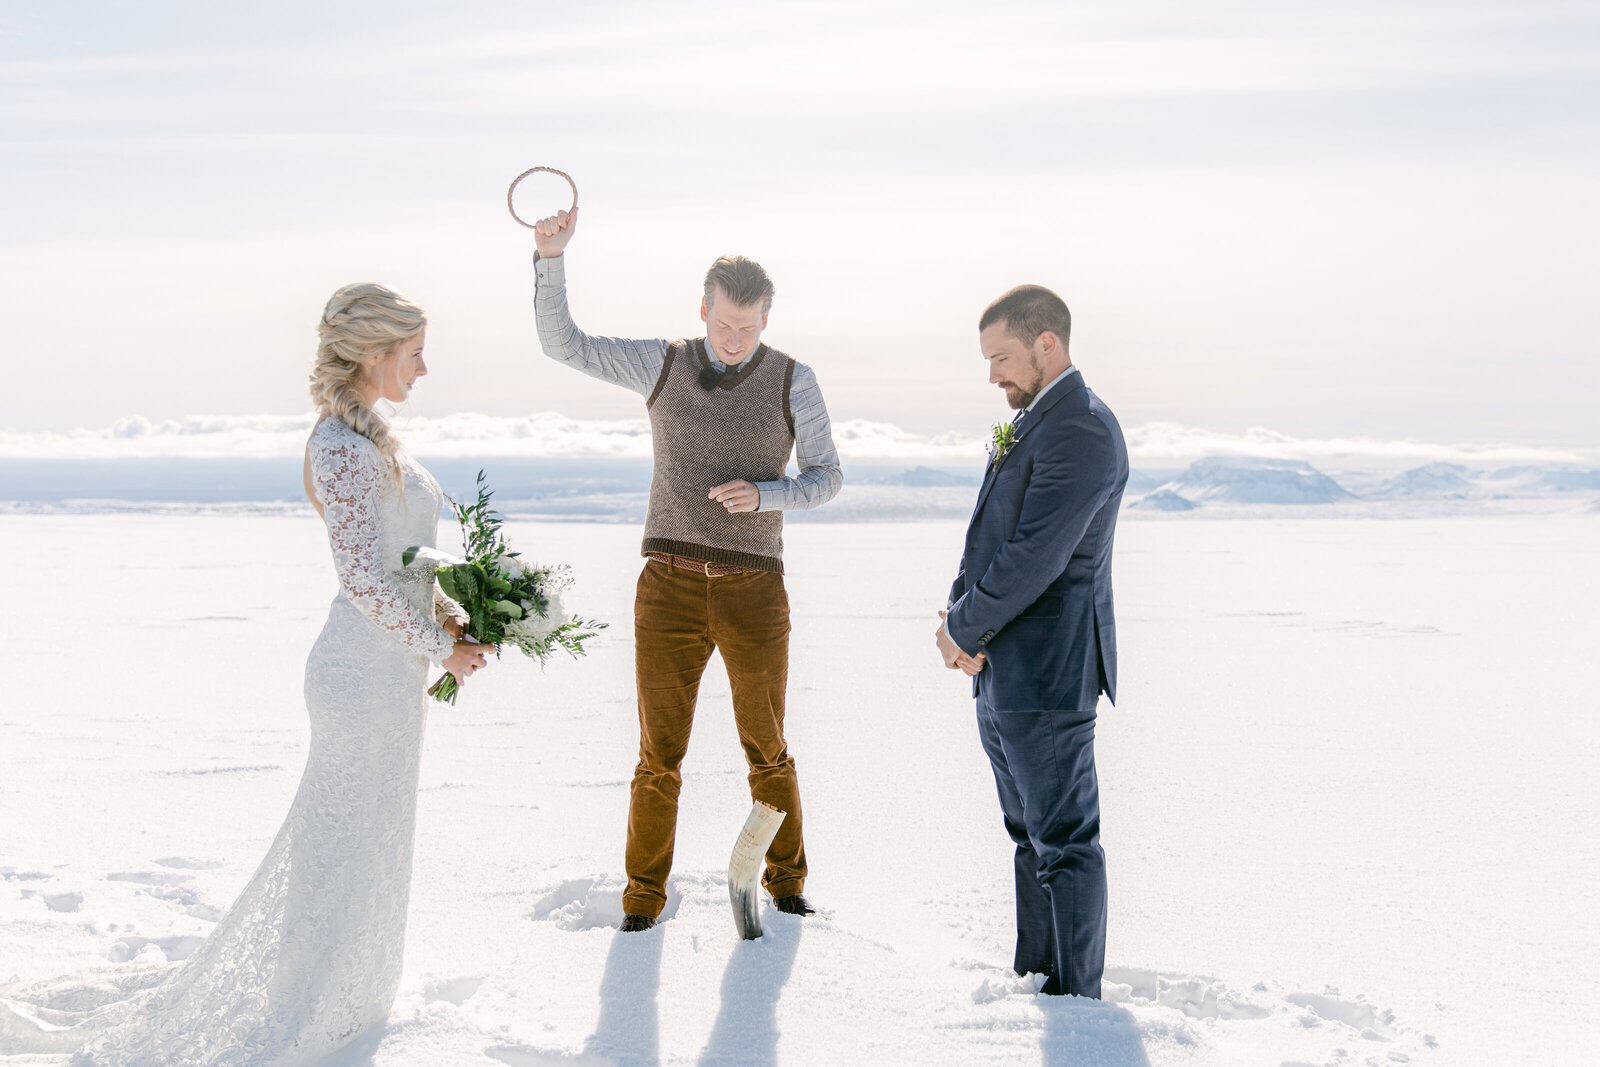 iceland officiating an elopement on top of a glacier with bride and groom